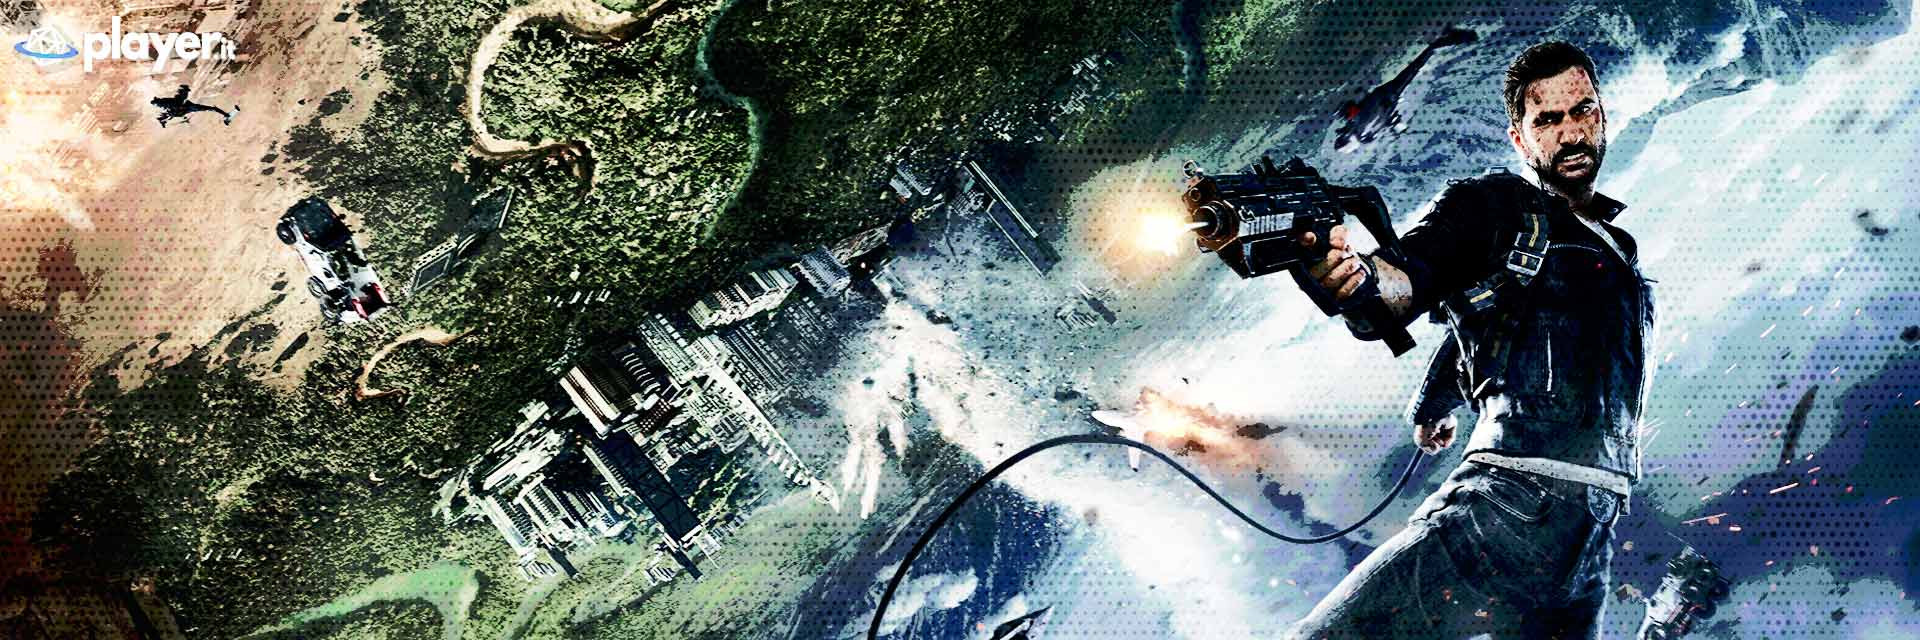 just cause 4 wallpaper in hd